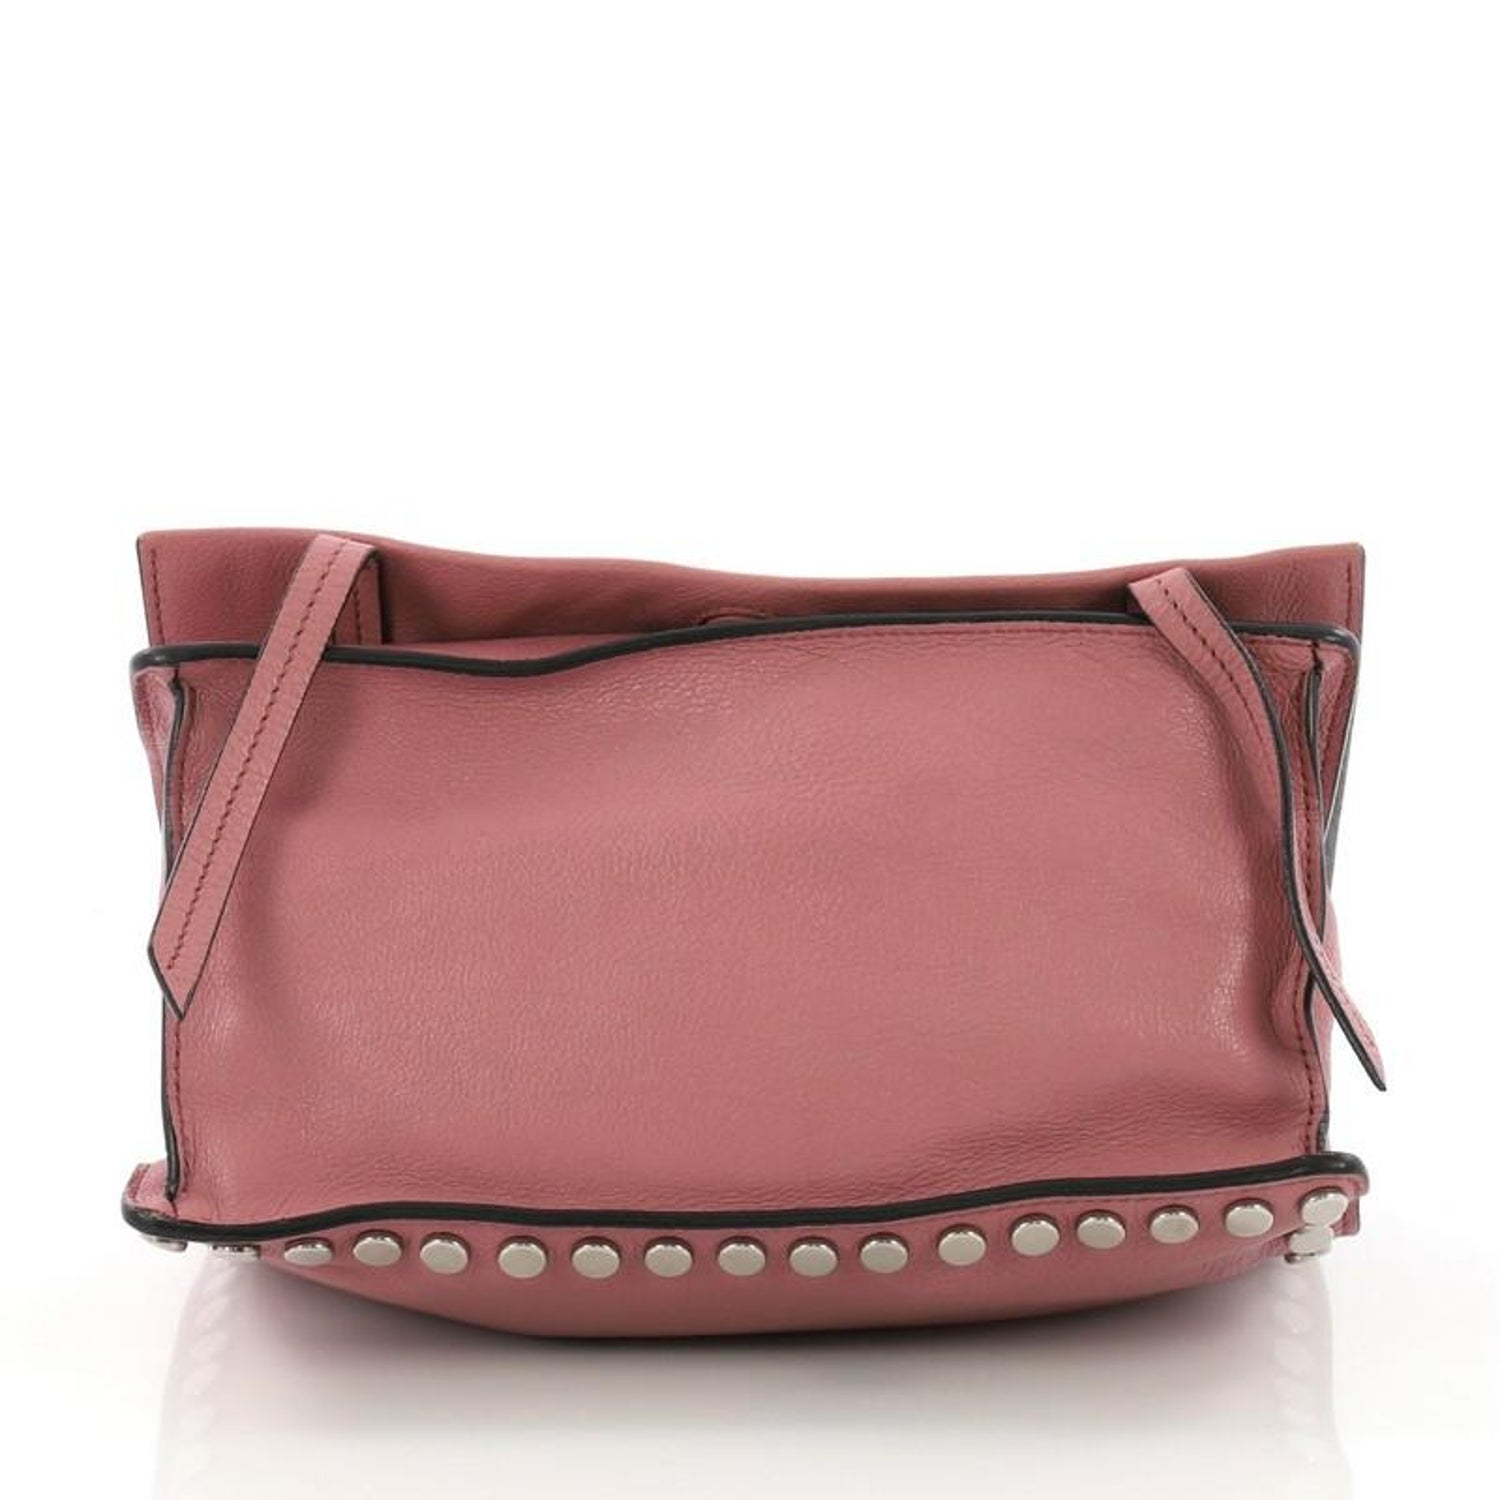 343cc7004975 Prada Etiquette Flap Bag Studded Glace Calfskin Small at 1stdibs